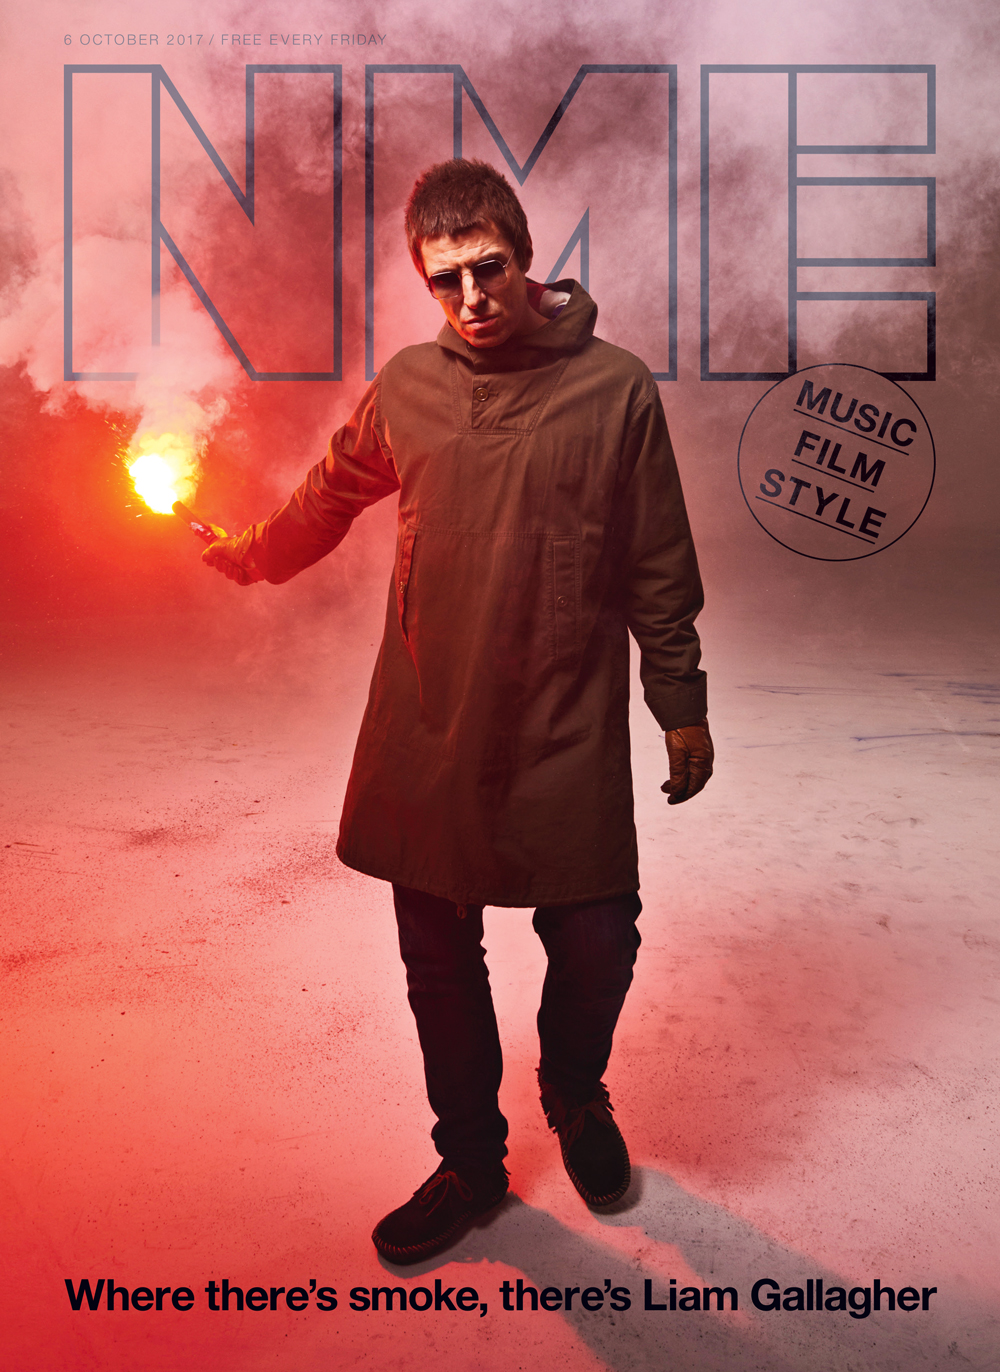 Liam Gallagher, NME